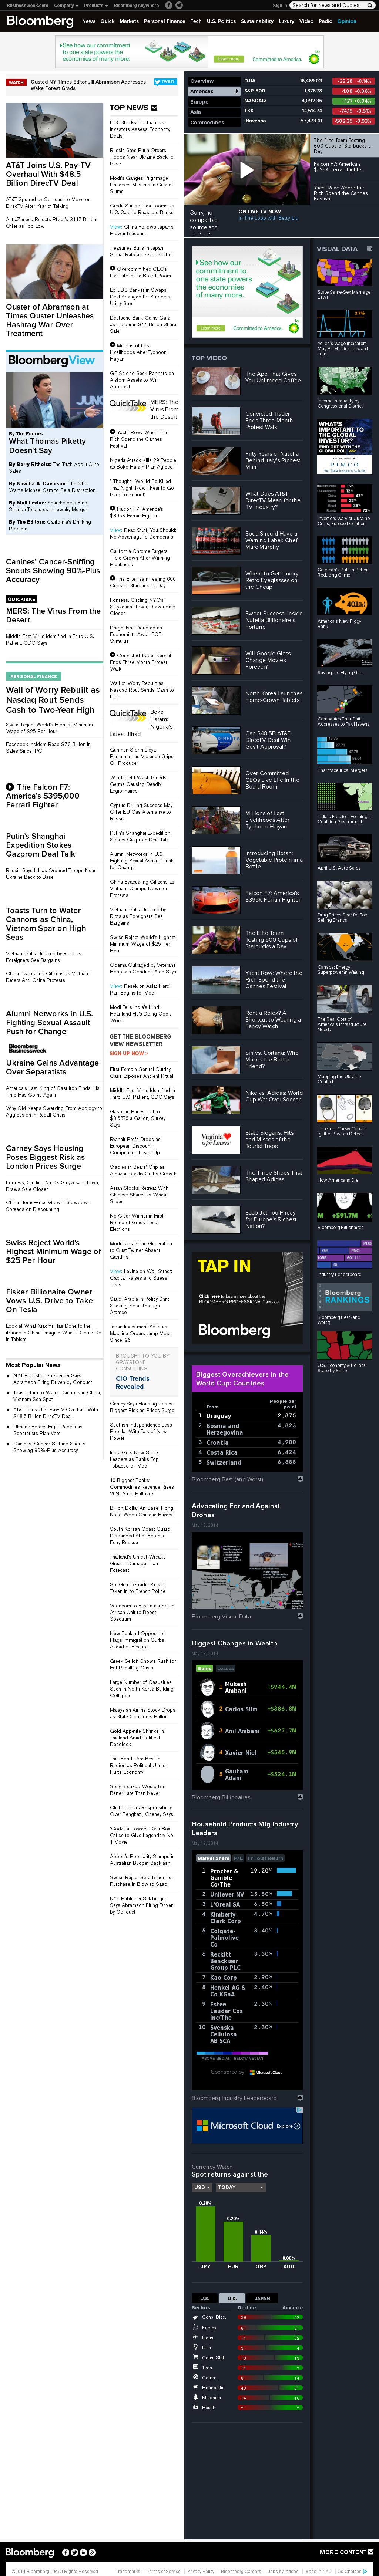 Bloomberg at Monday May 19, 2014, 2:01 p.m. UTC